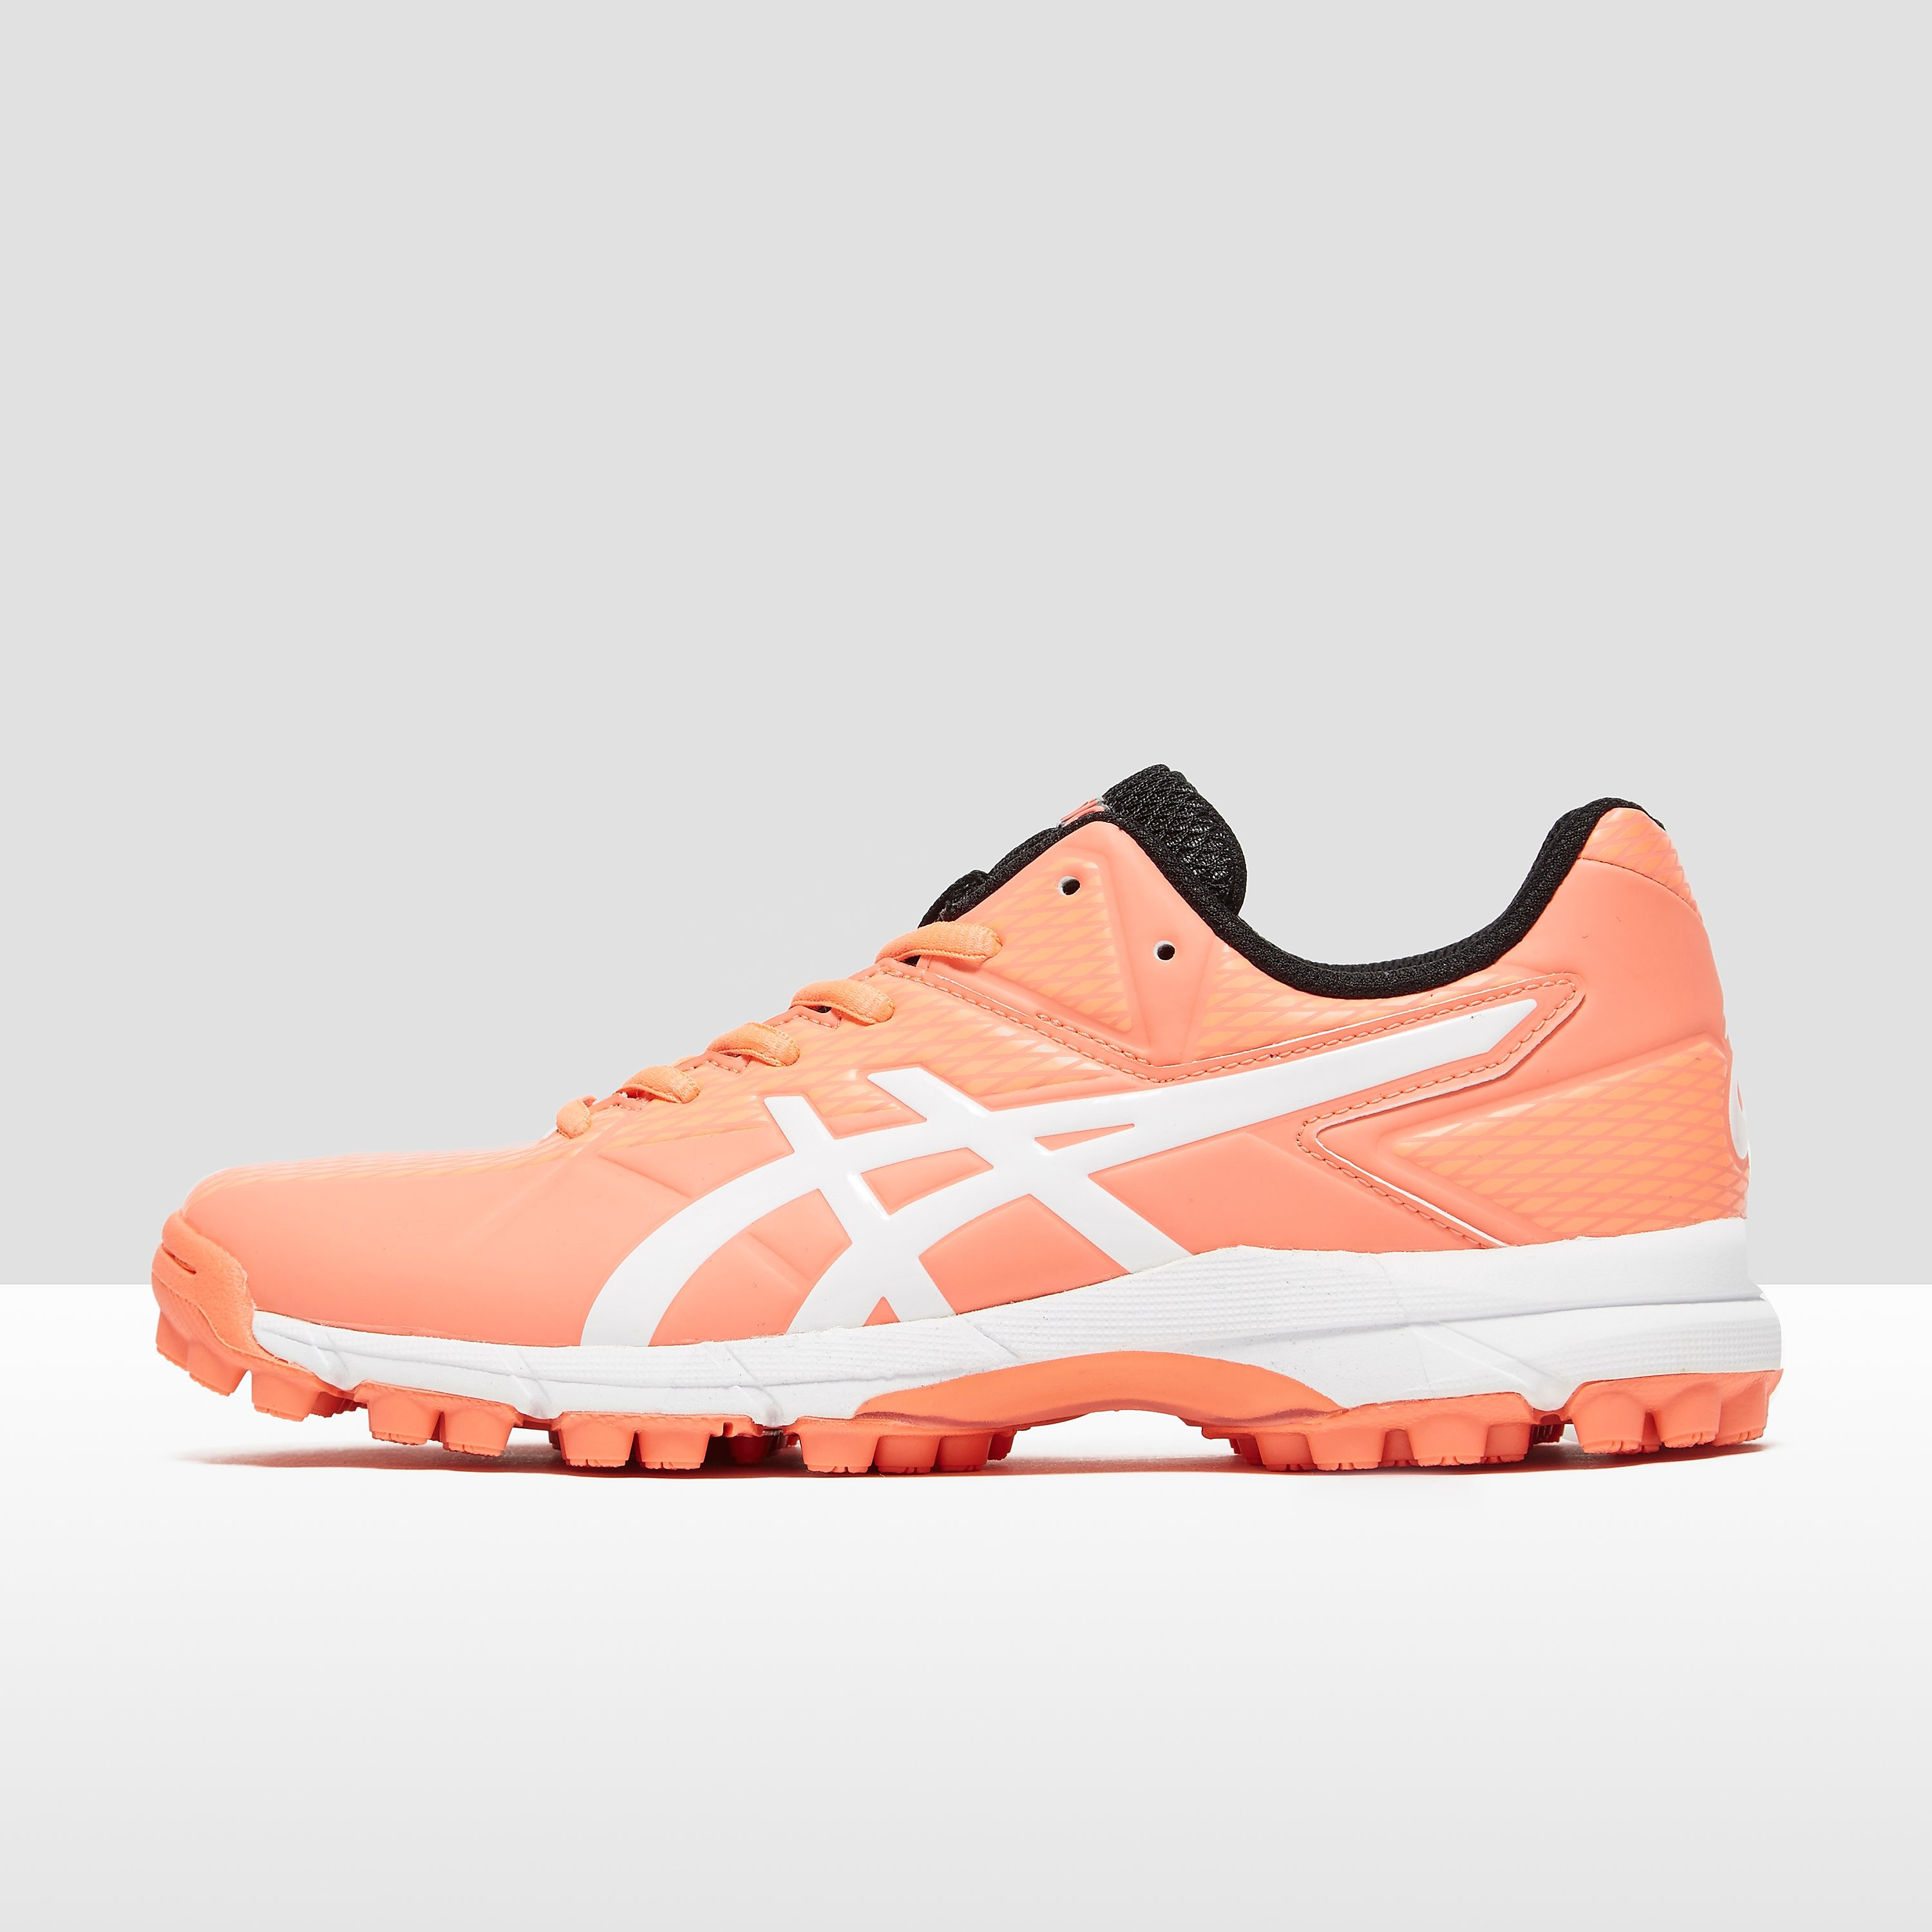 ASICS GEL-HOCKEY NEO 4 WOMEN'S HOCKEY SHOES